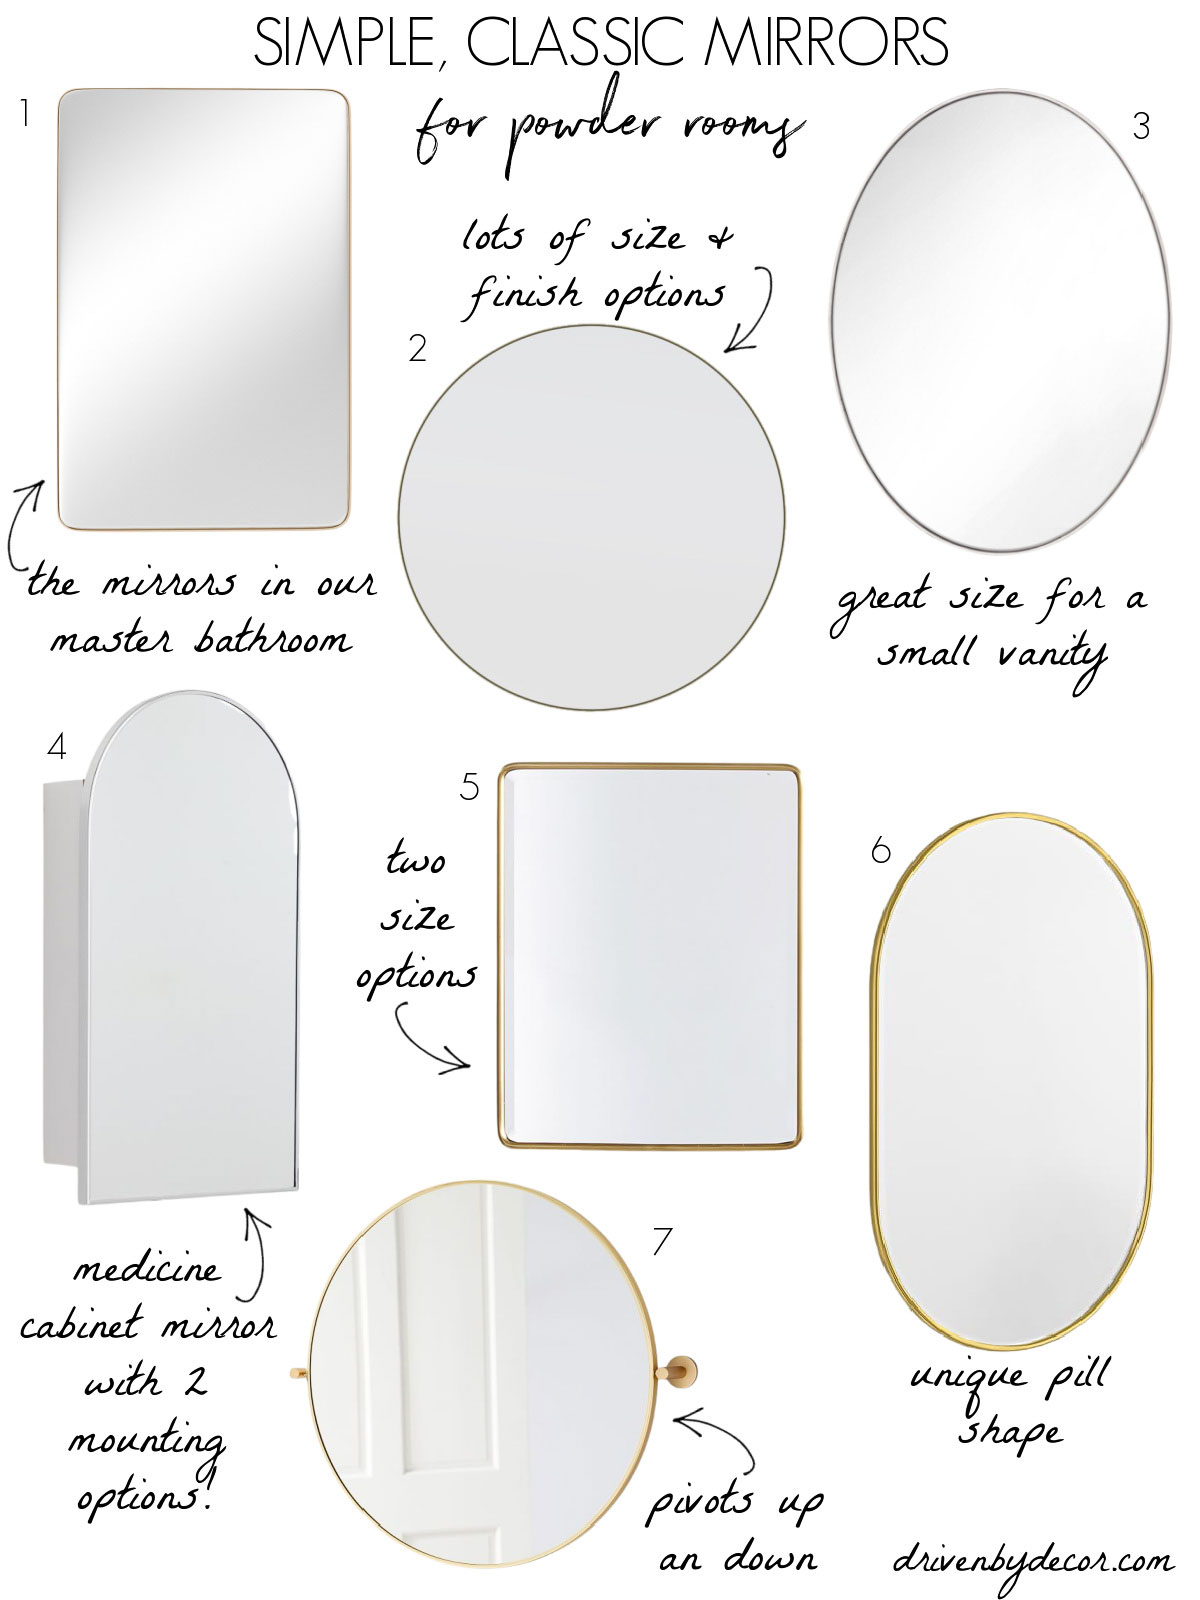 Powder room mirror options that are simple and classic!